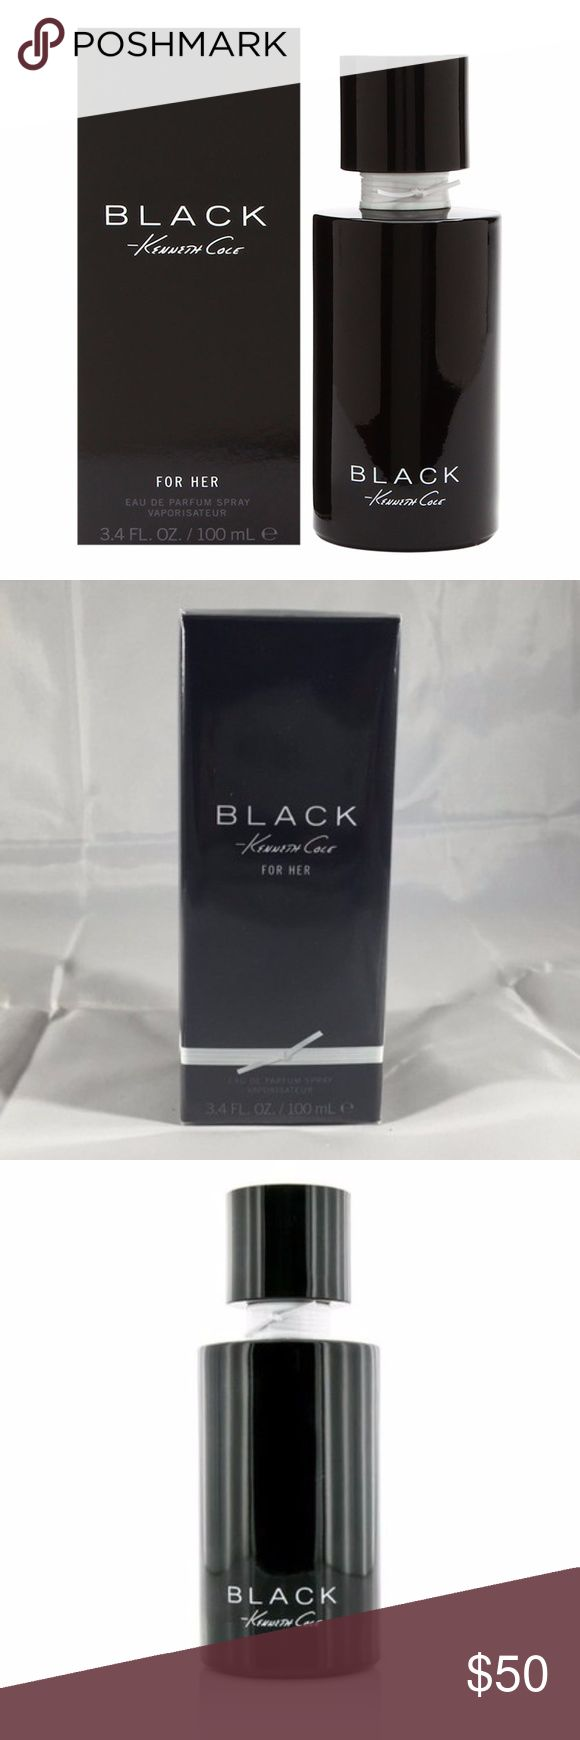 Kenneth Cole Black 3.4oz Eau de Parfum Spray $78 Kenneth Cole Black 100ml/3.4oz EDP Eau De Parfum Spray Perfume For Women New in the Sealed Retail Box 100% Authentic Retail Price: $78.00  The composition opens with violet & citrus. Shortly the white flowers come to the scene & unrivaled rule the heart of the fragrance: Jasmine, ylang-ylang, lily of the valley, magnolia, tuberose, hyacinth, lotus & iris. The comfortable & warm notes of sandalwood, musk & amber tame the ecstatic flowers…